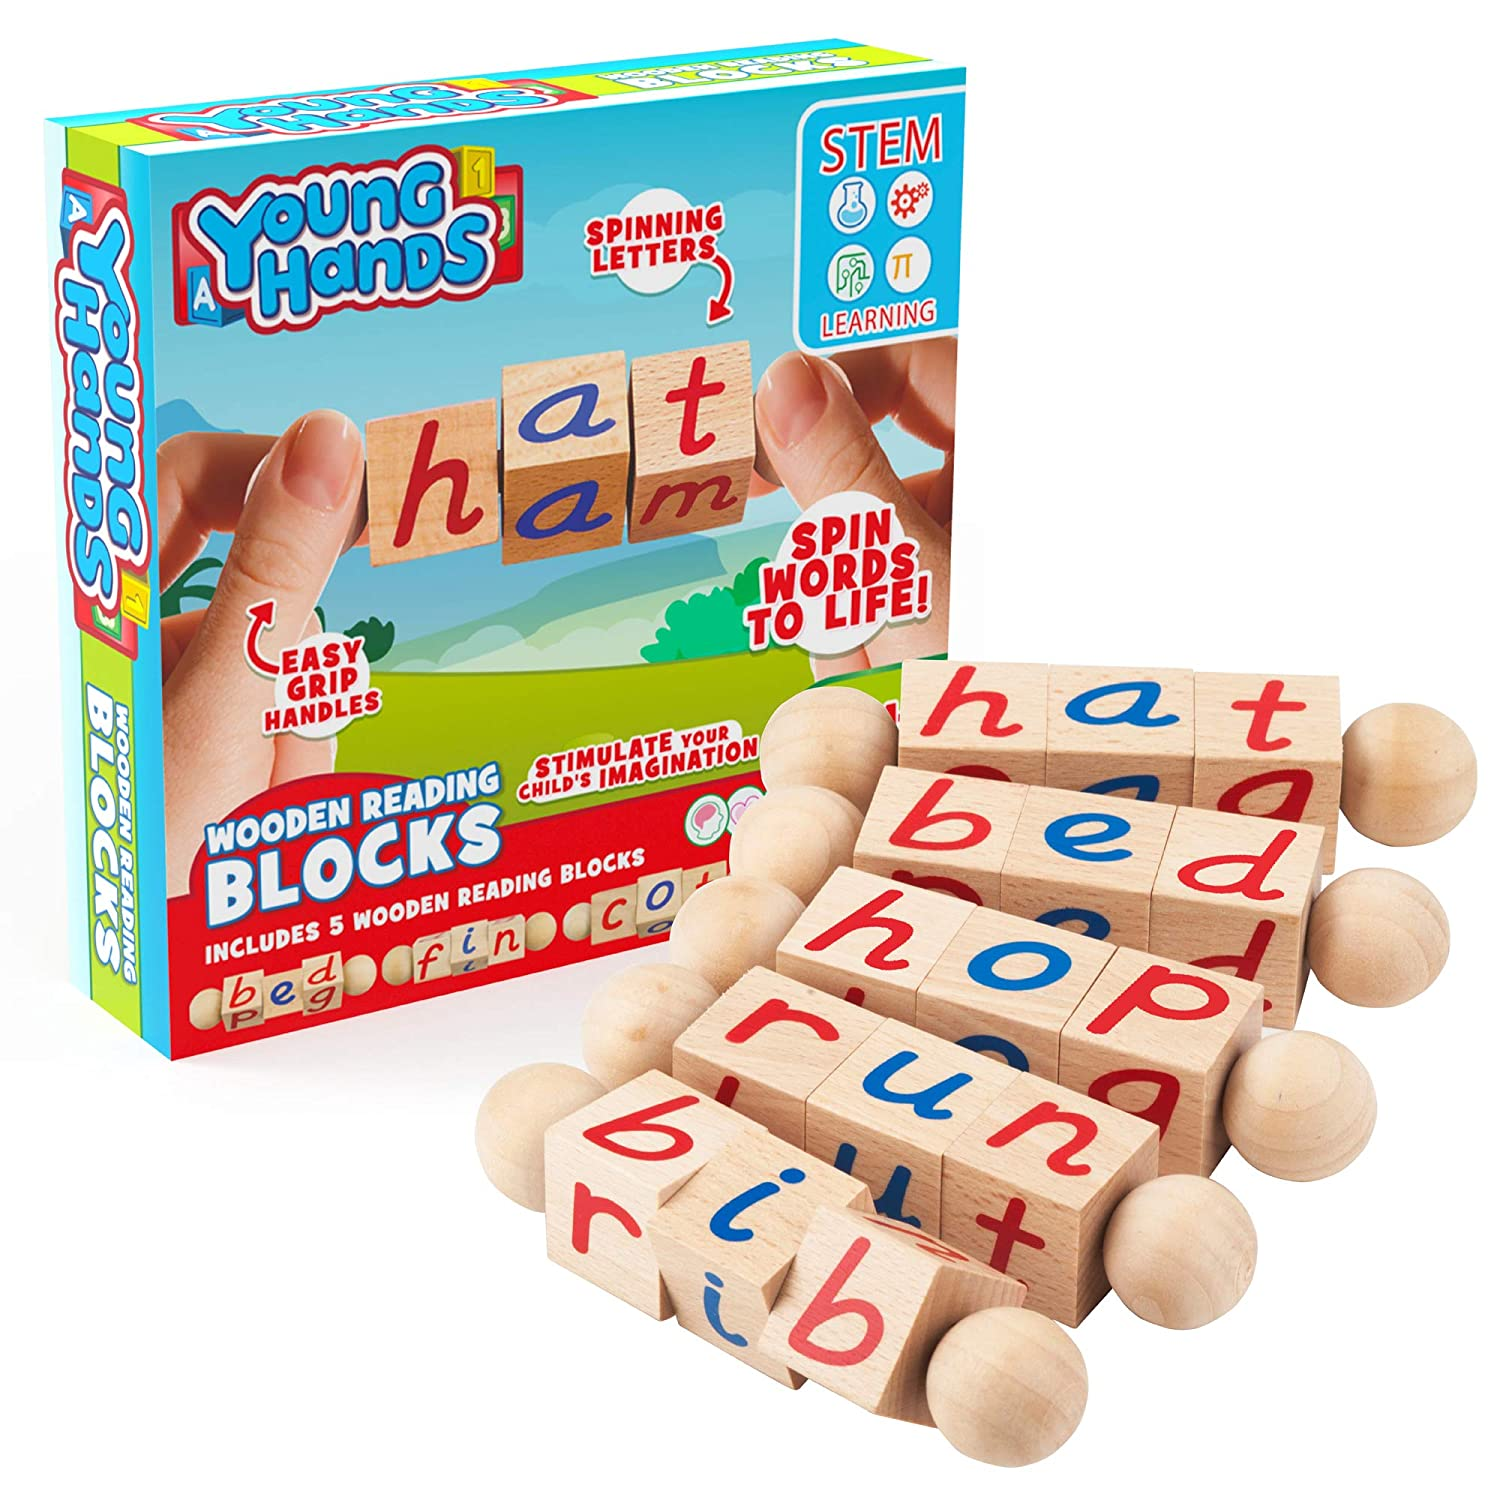 Wooden Reading Blocks | [5] Sets of Fun, Educational Spinning Alphabet Manipulative Blocks for Children w/ Easy-Grip Handles | STEM & Montessori Approved Toy for Pre-Kindergarten Boys & Girls Gift